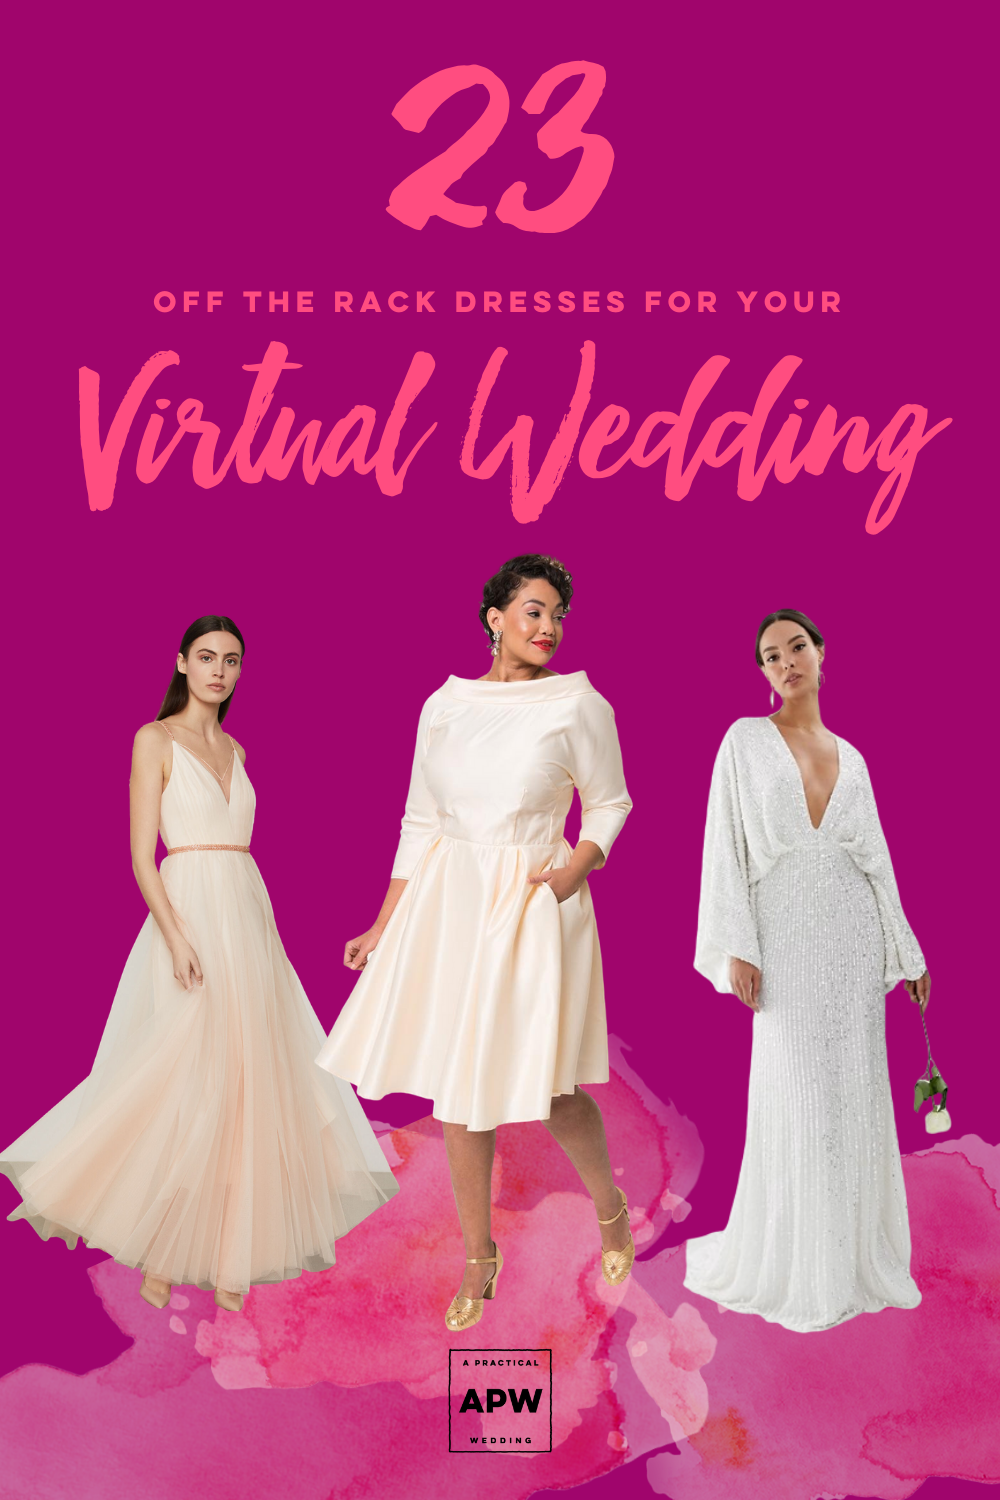 Off The Rack Wedding Dresses To Buy Today A Practical Wedding In 2020 Wedding Dresses Bridal Dresses What Is Wedding